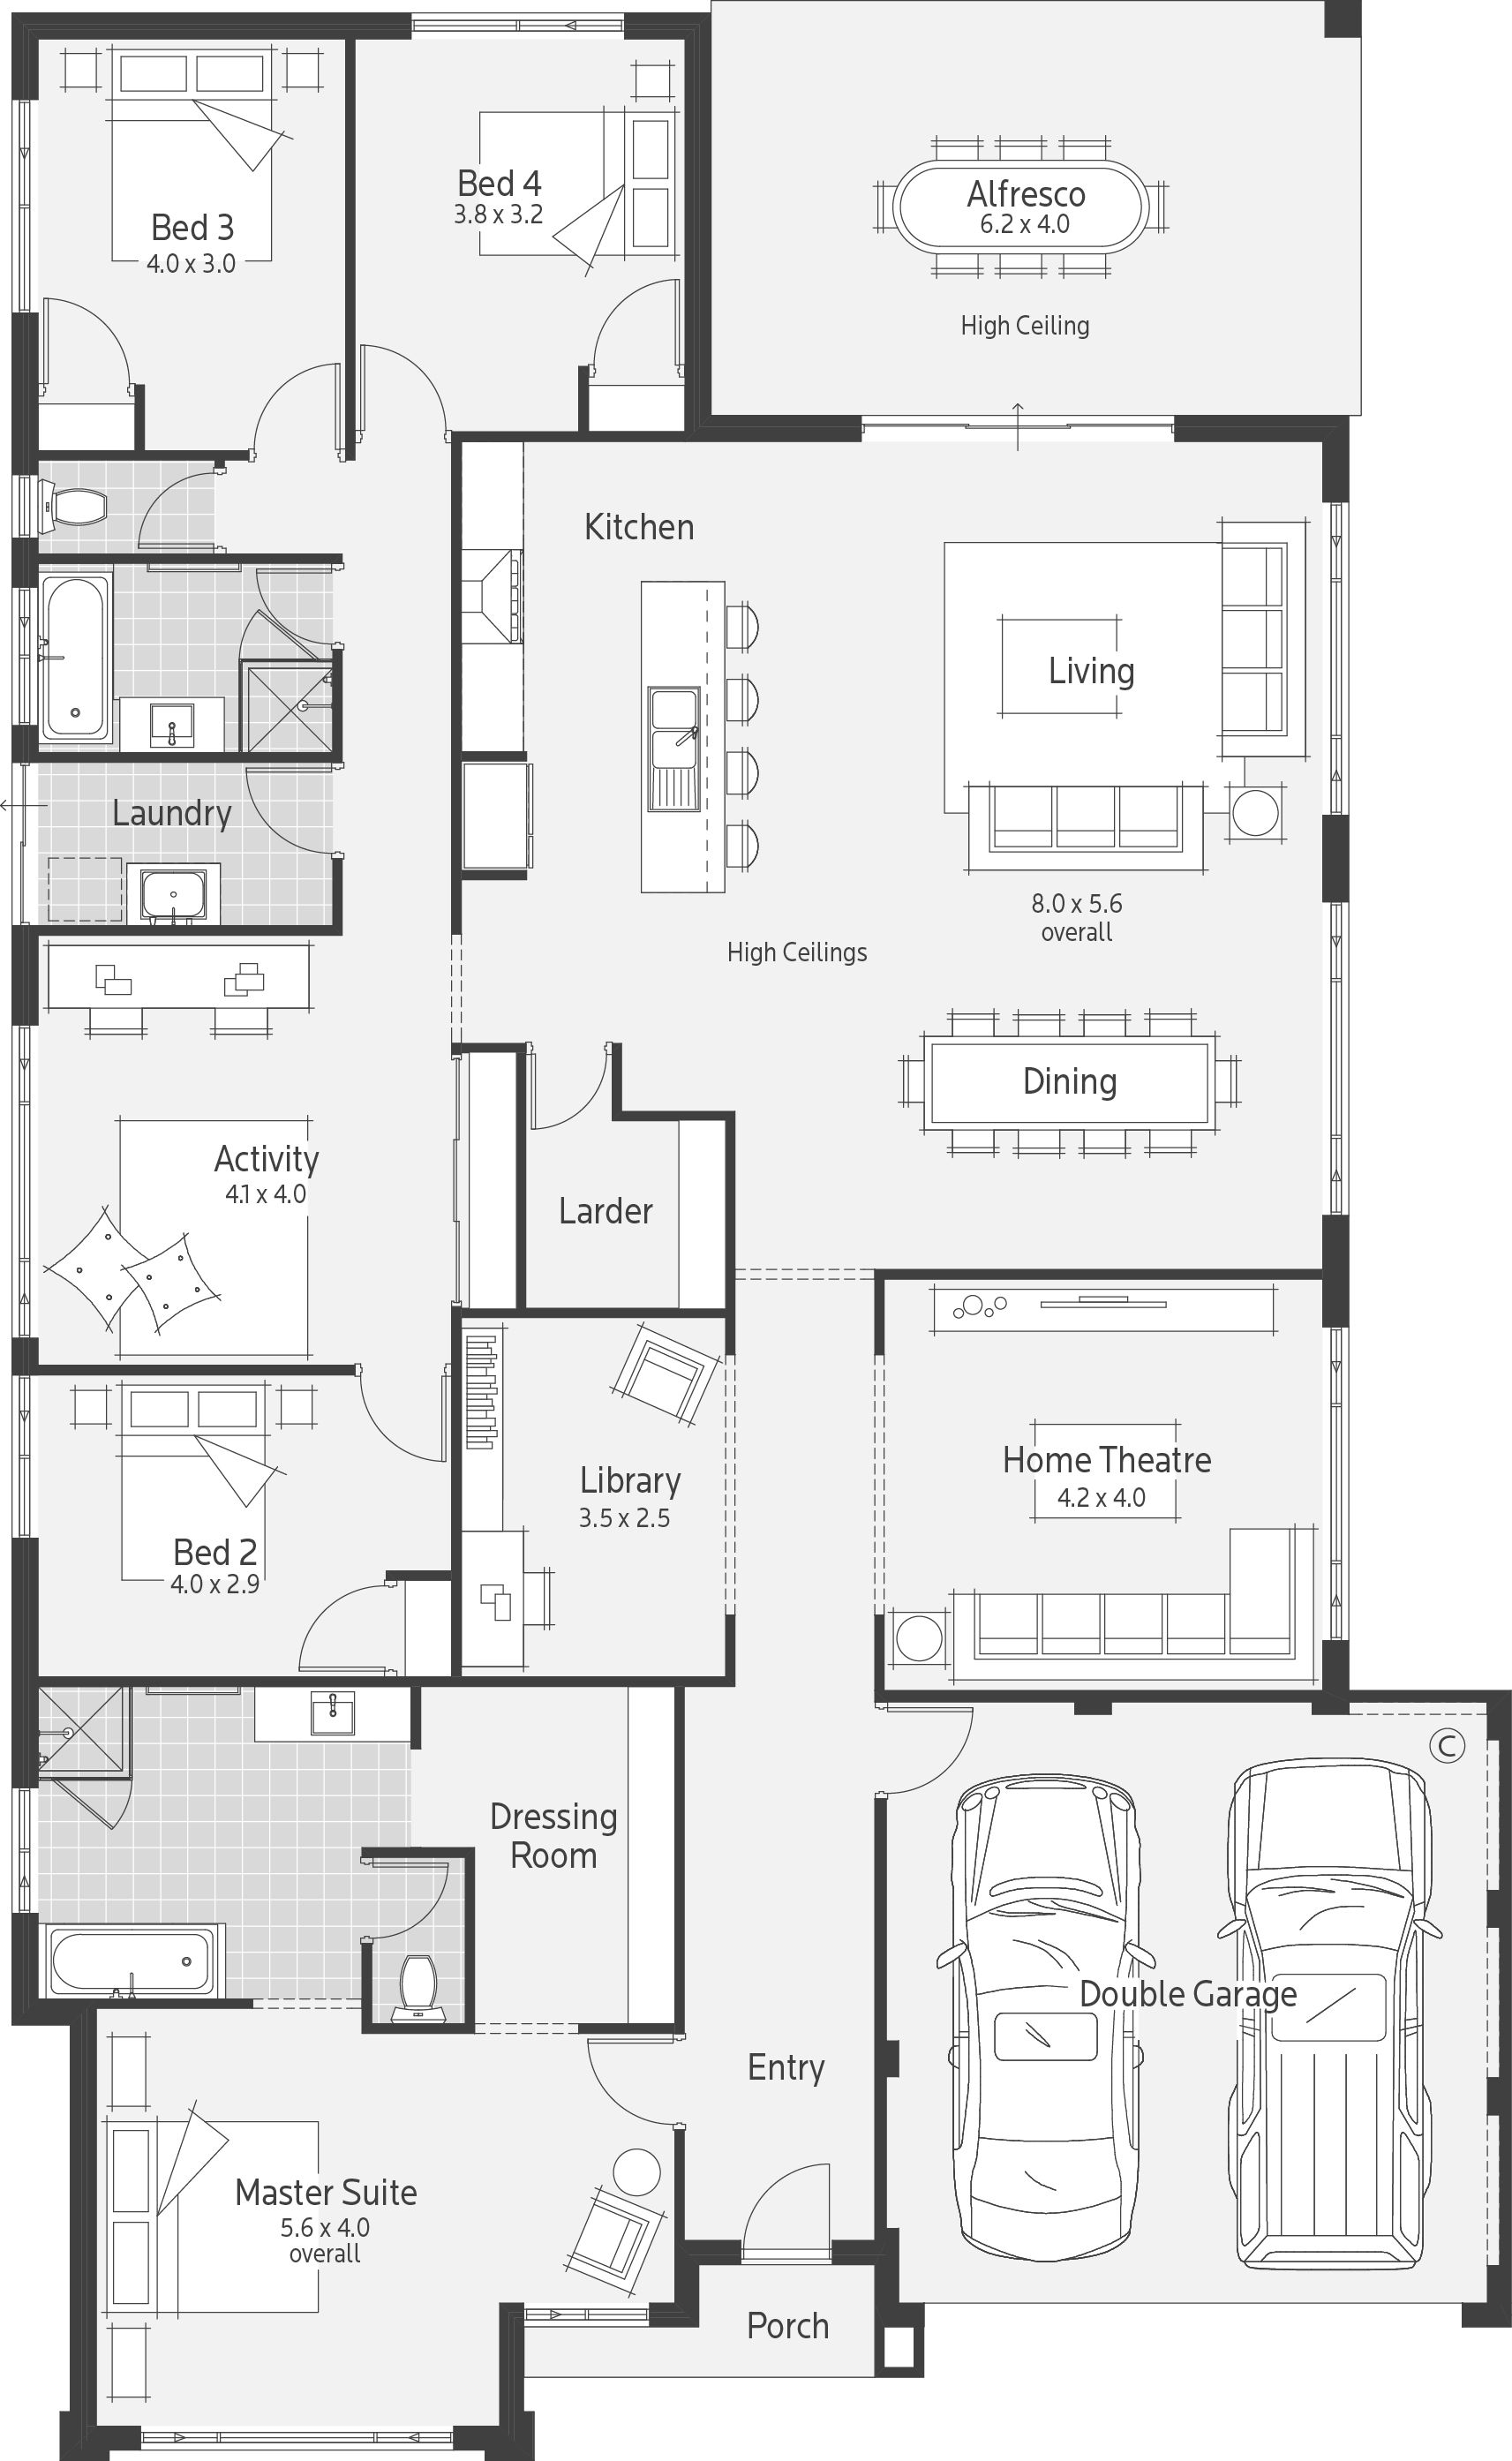 Affinity dale alcock homes